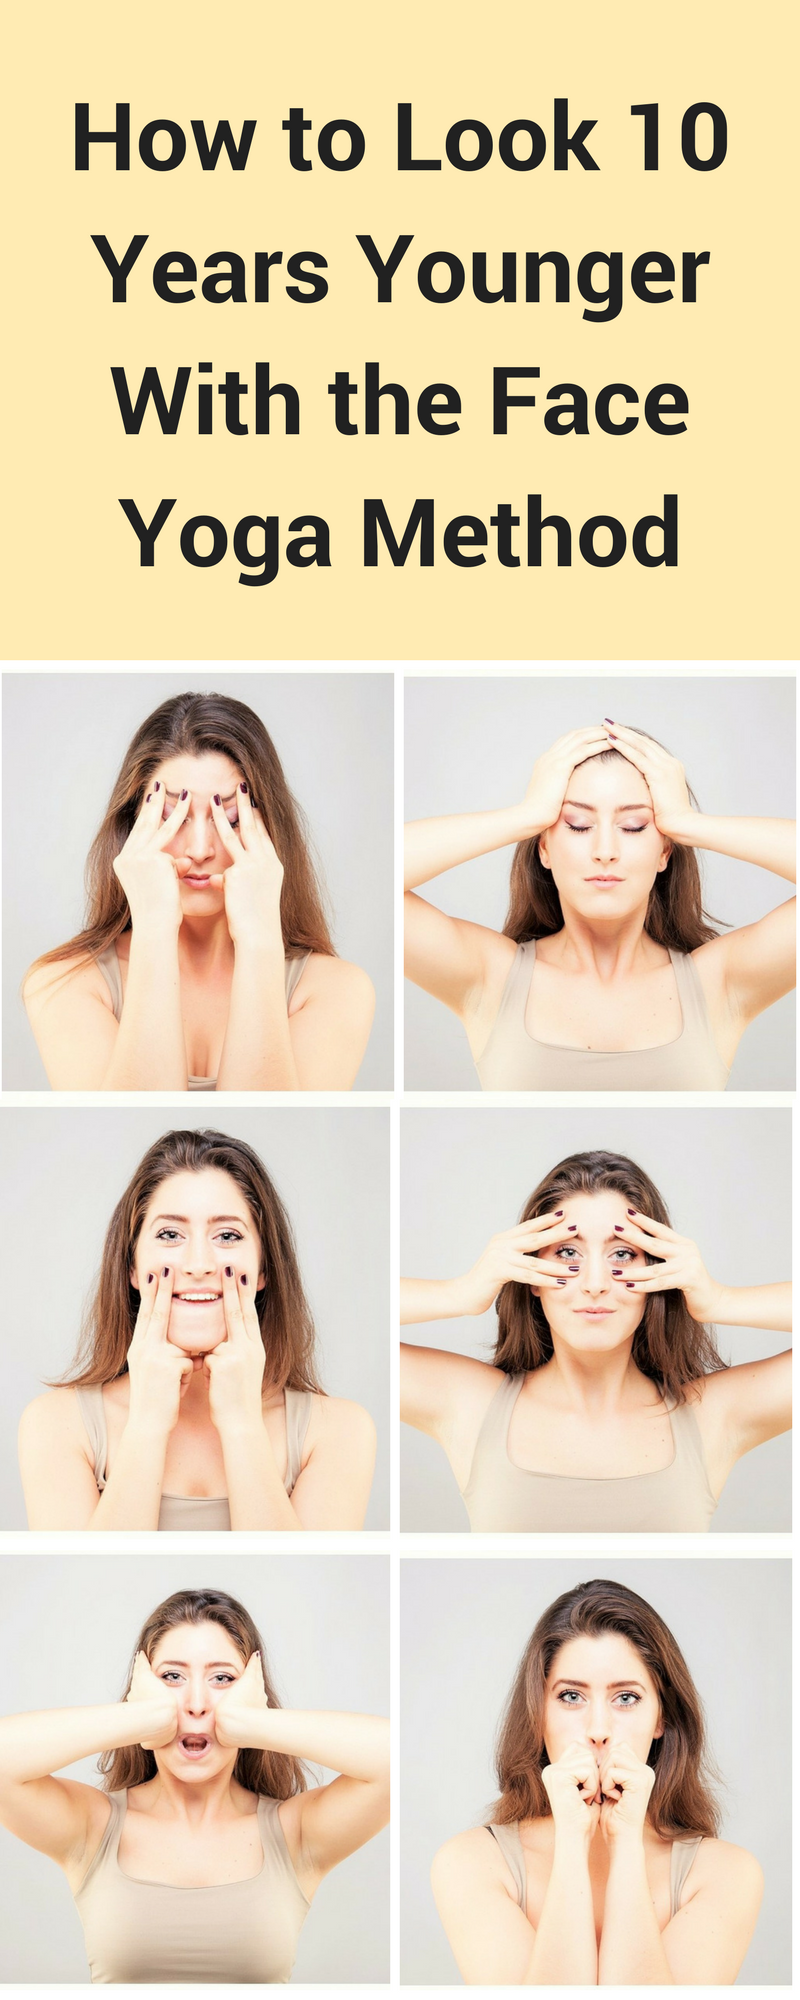 How to Look 10 Years Younger Using Face Yoga - A Few Moments of Making Silly Faces Gives You Longer Lasting Beauty #yoga #yogaworkout #face #faceyoga #antiaging | Face Yoga | Face Yoga Method | Face Yoga Exercises | Face Yoga Anti Aging | Face Yoga Anti Aging Facial Exercises | Yoga | yoga | yoga for beginners | yoga poses | yoga inspiration | yoga face | yoga face anti aging | yoga face exercises anti-aging | yoga face exercises